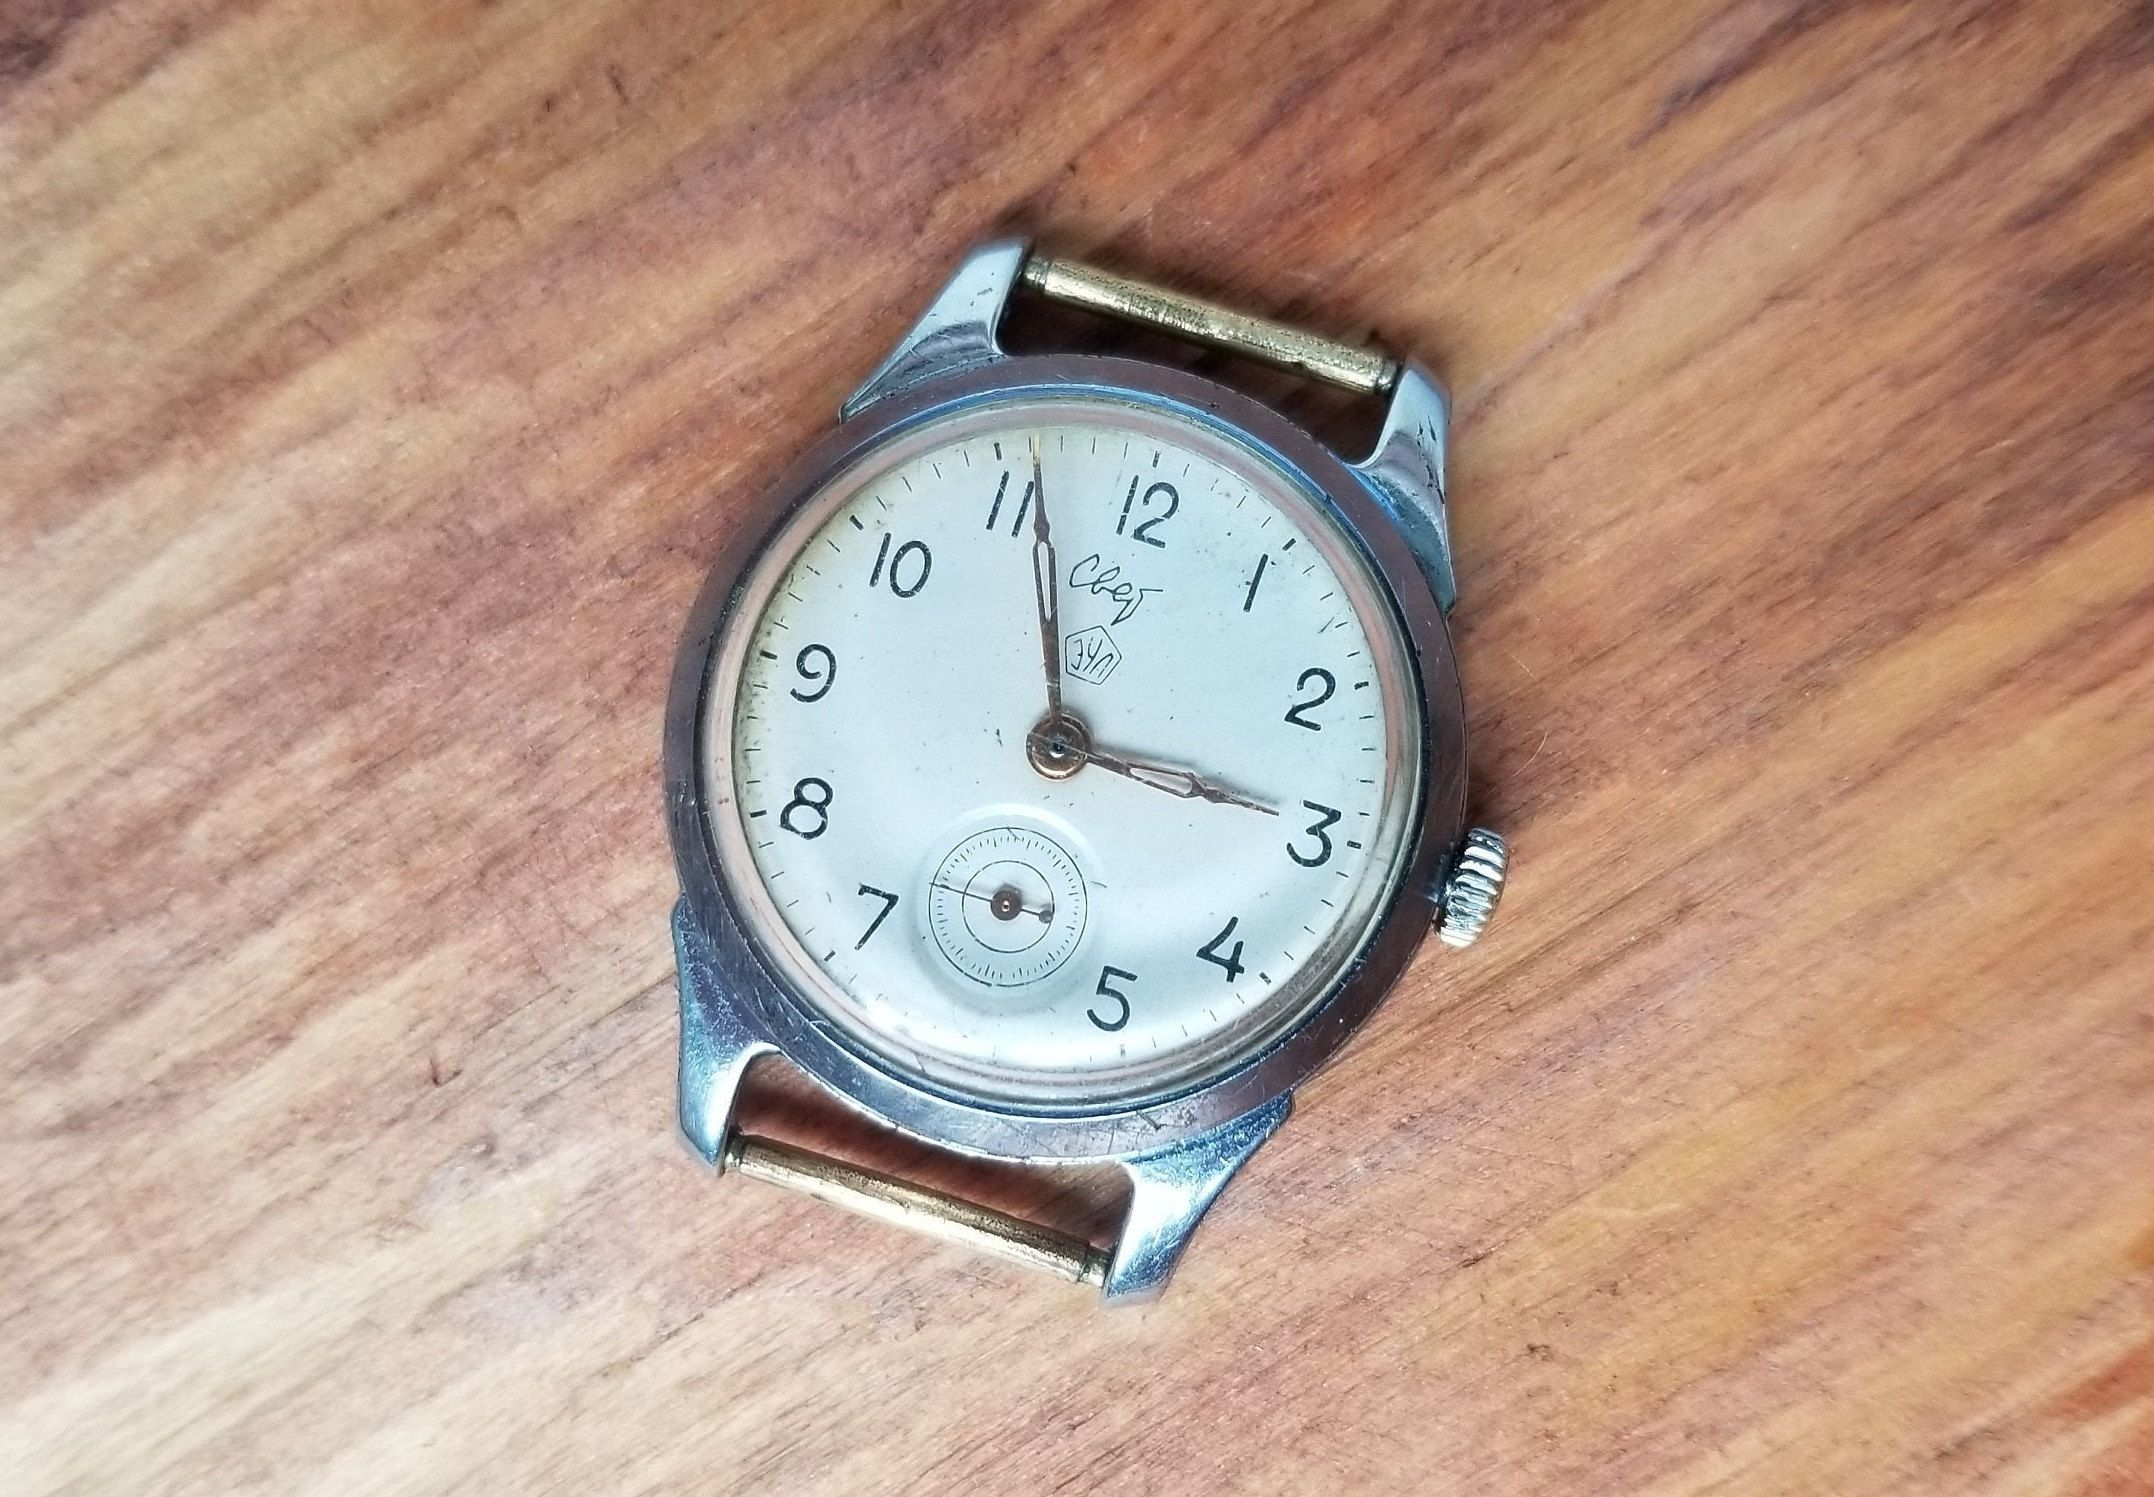 Svet watches, watches, mechanical watches, unisex watches, a gift for dad